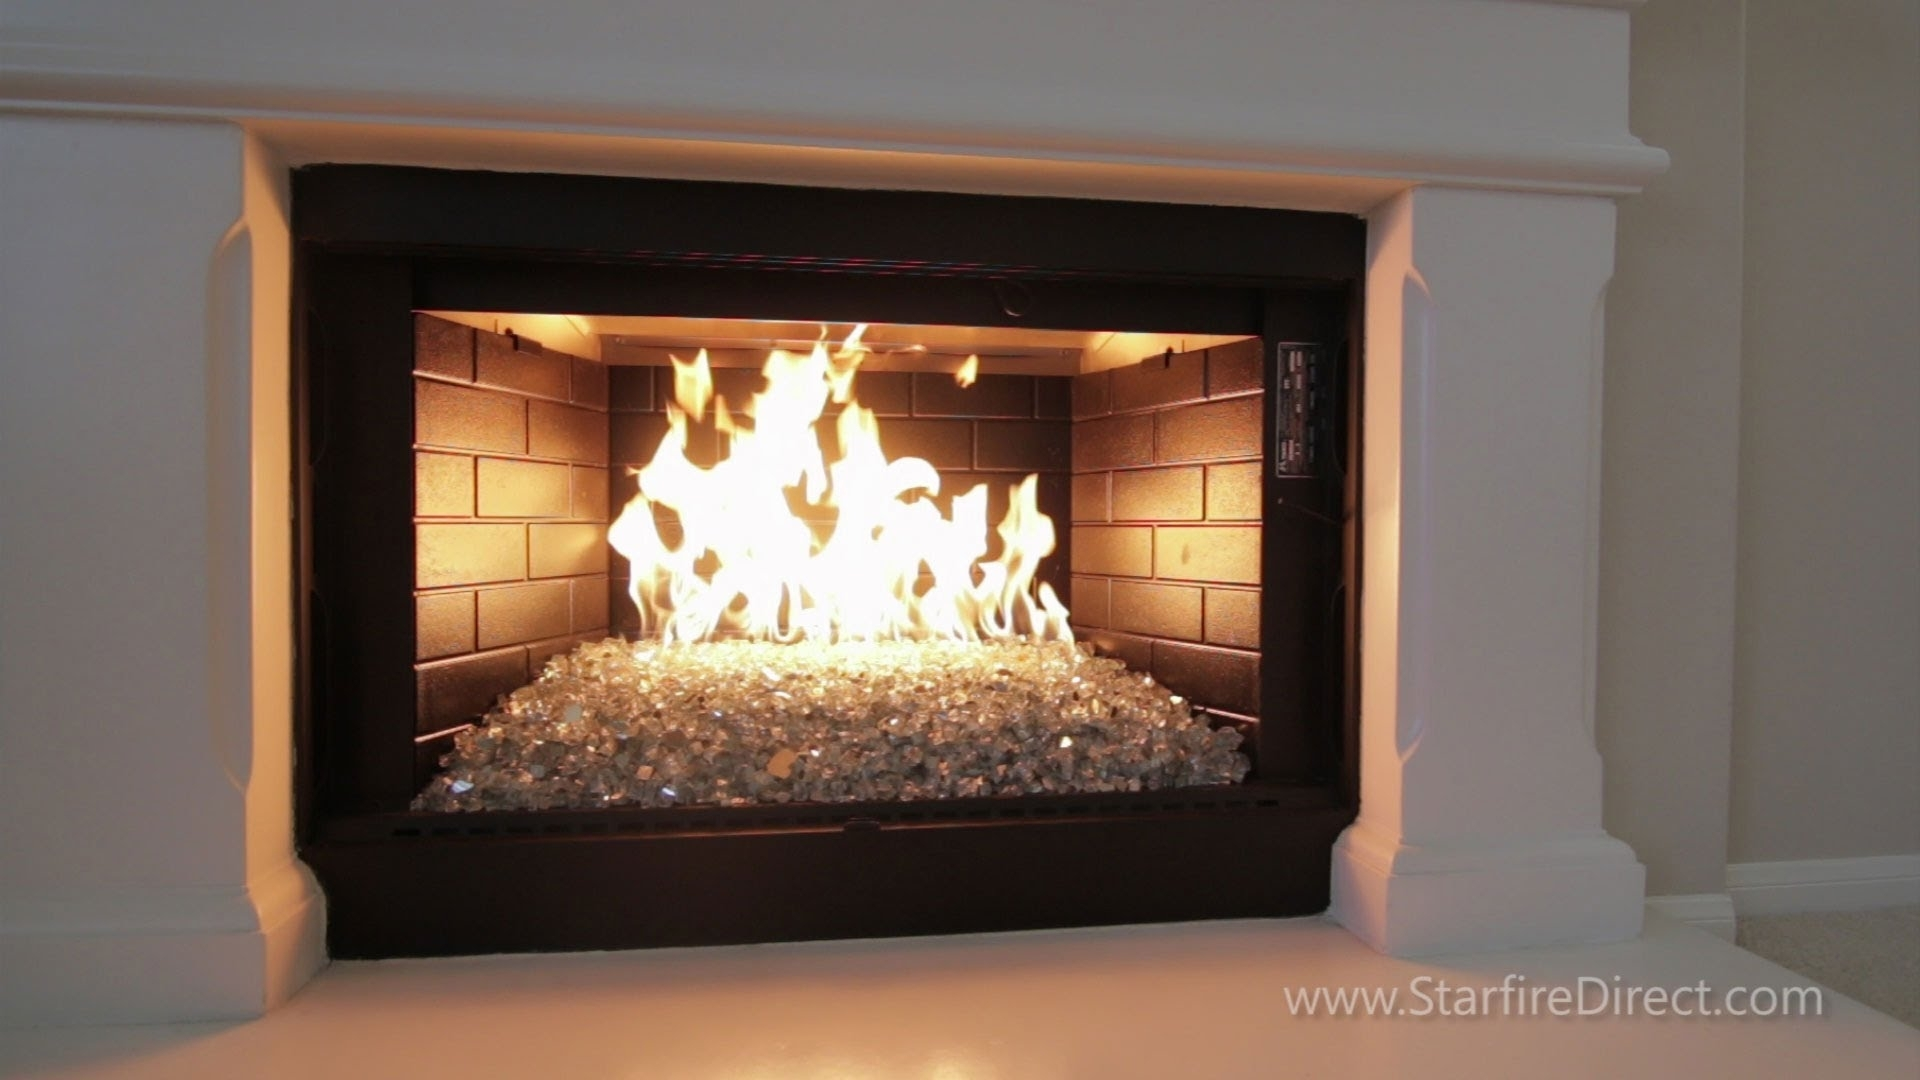 How To Install An H Burner And Fire Glass In Your Fireplace For Indoor Outdoor Fireplace Gas Indoor Outdoor Fireplace Gas Style